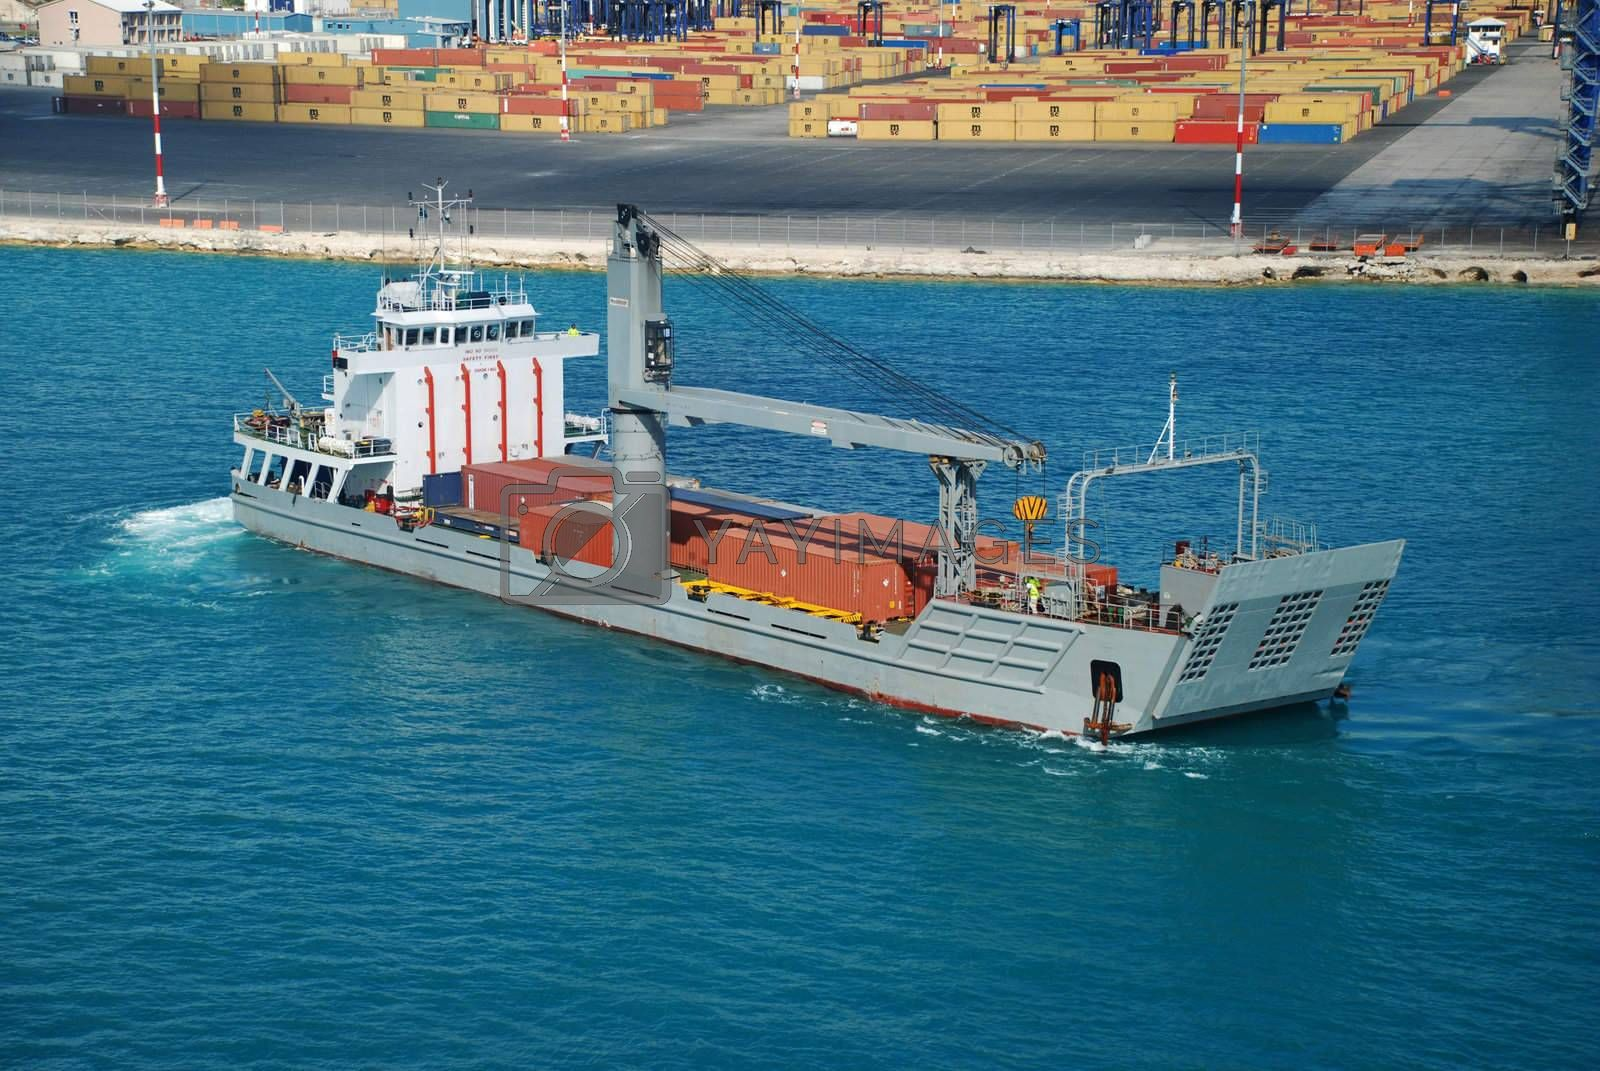 stock pictures of a boat used for transporting cargo